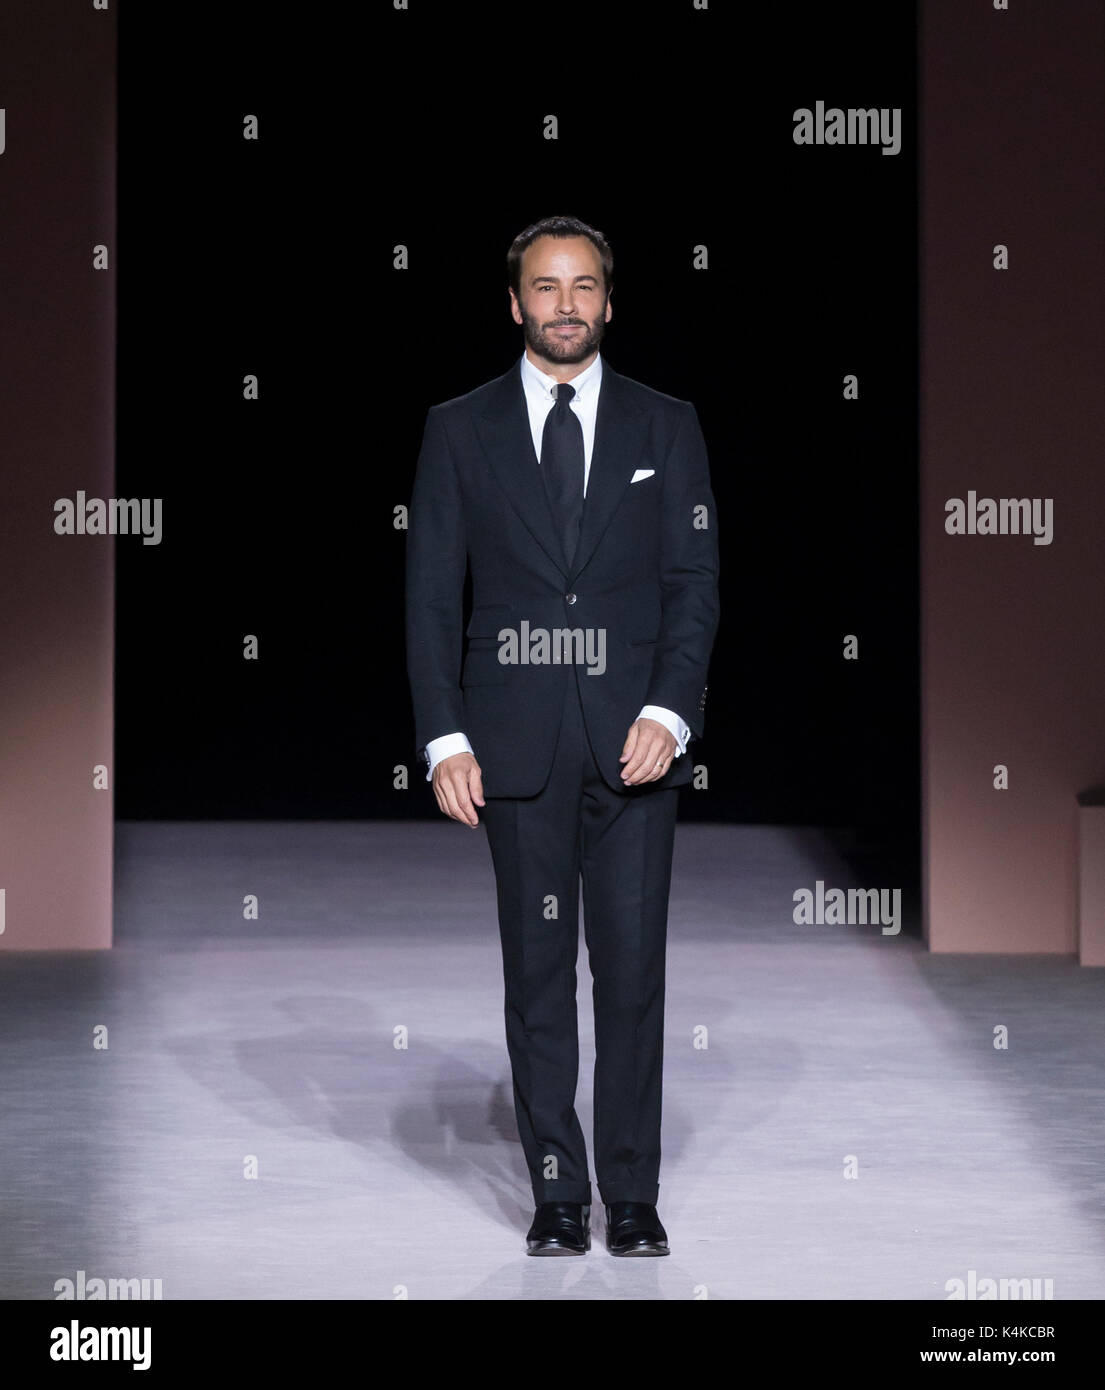 New York Ny September 06 2017 Designer Tom Ford Walks The Runway Stock Photo Alamy